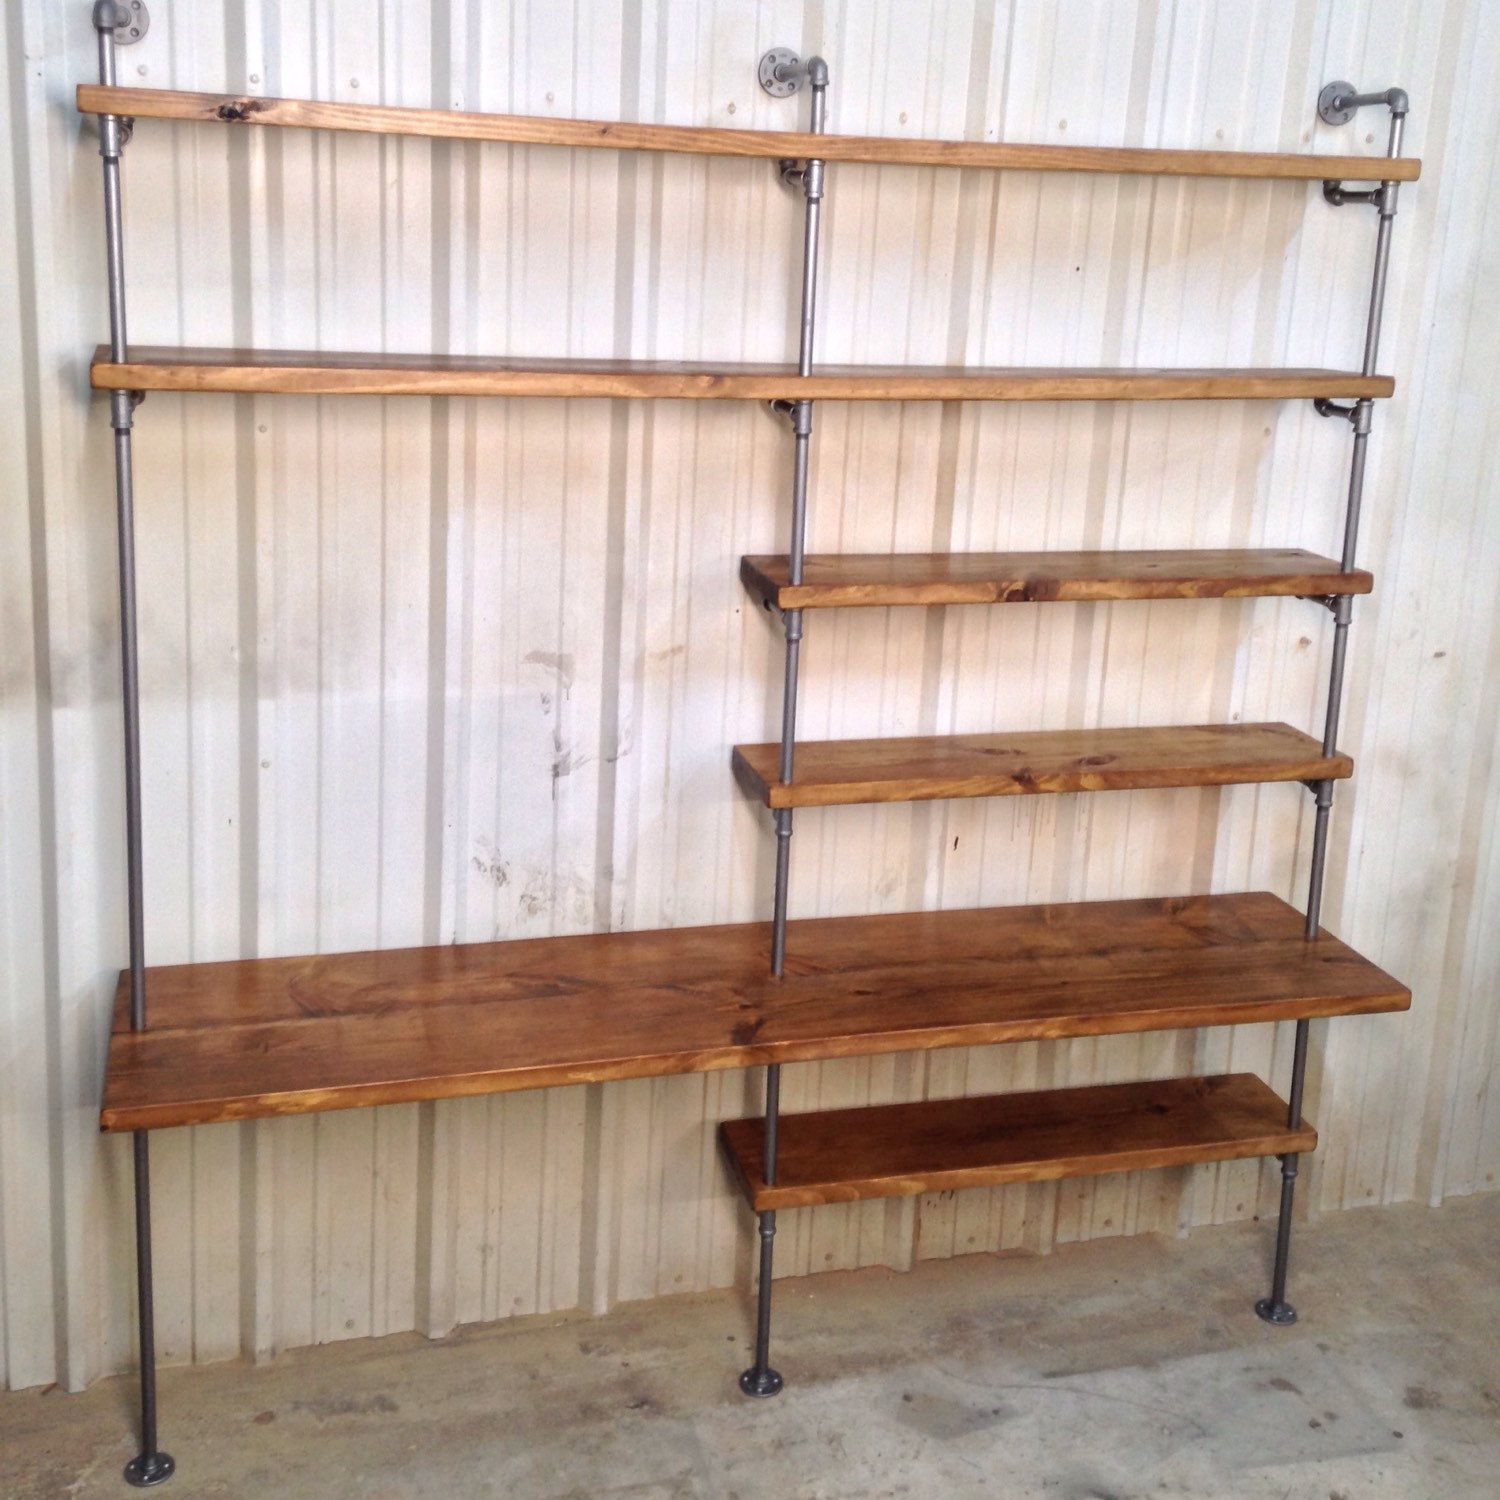 Pipe Shelving Unit Bookcase W Desk By Envy